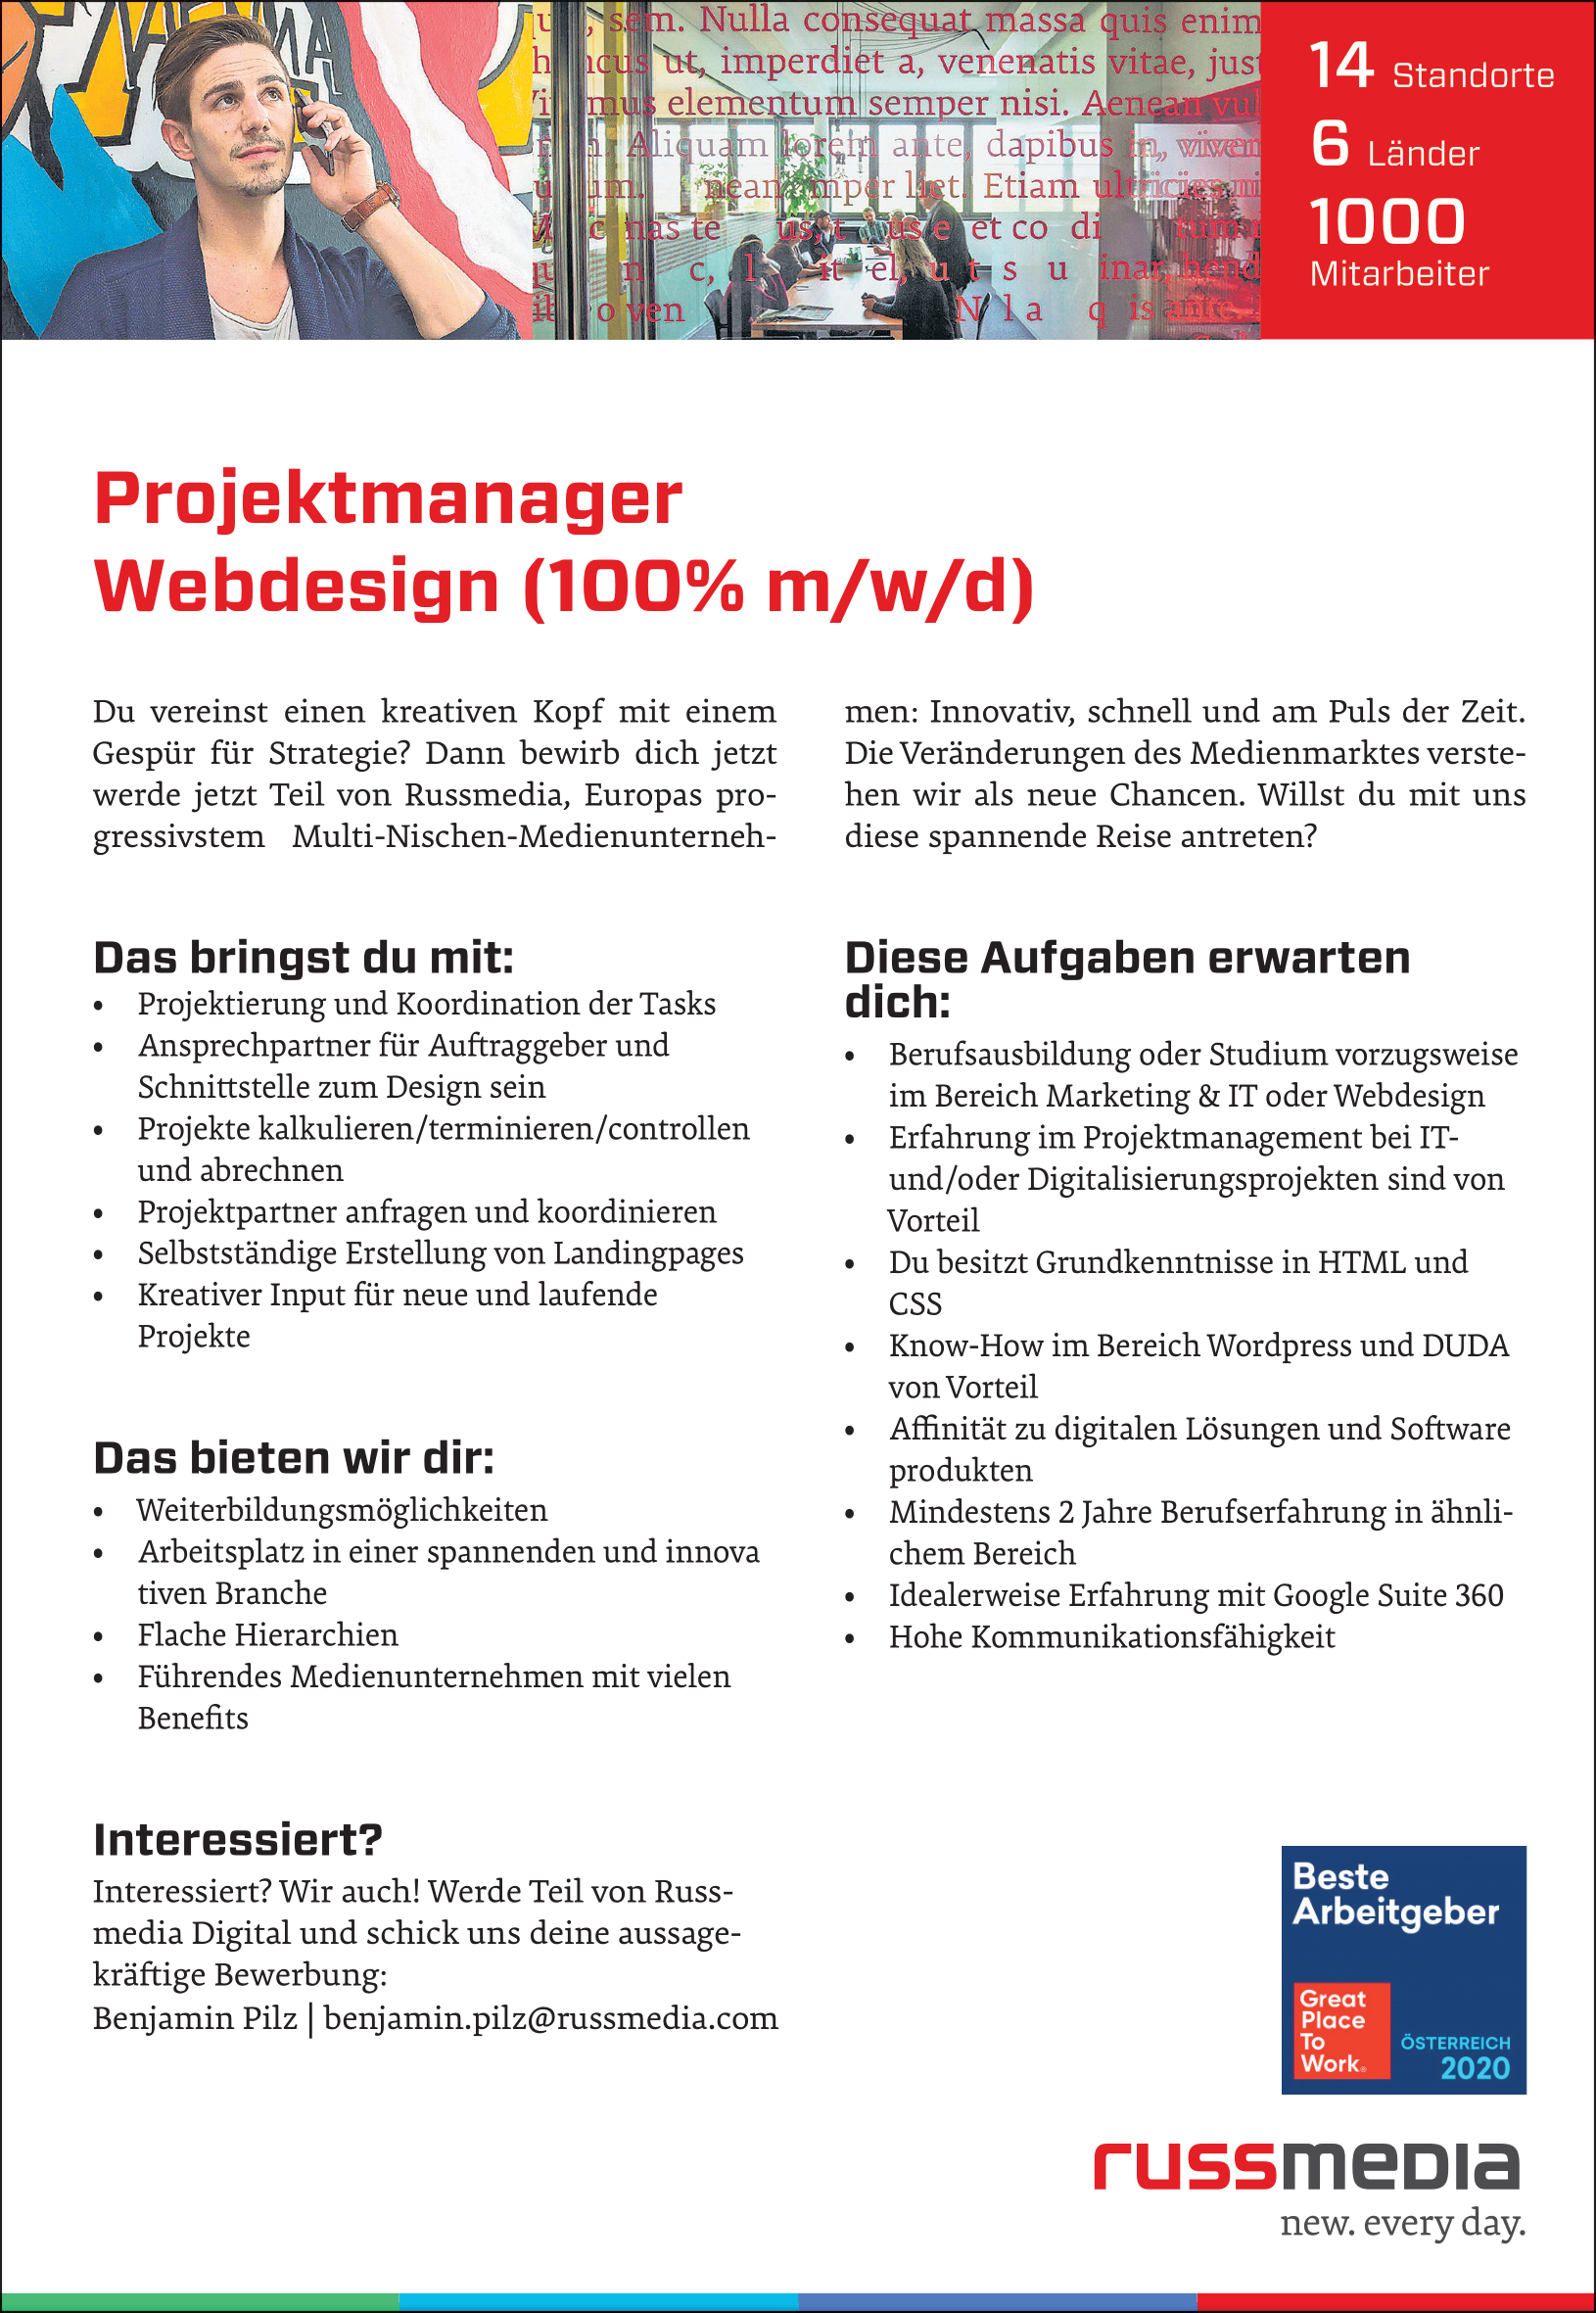 Projektmanager Webdesign (100% m/w/d)